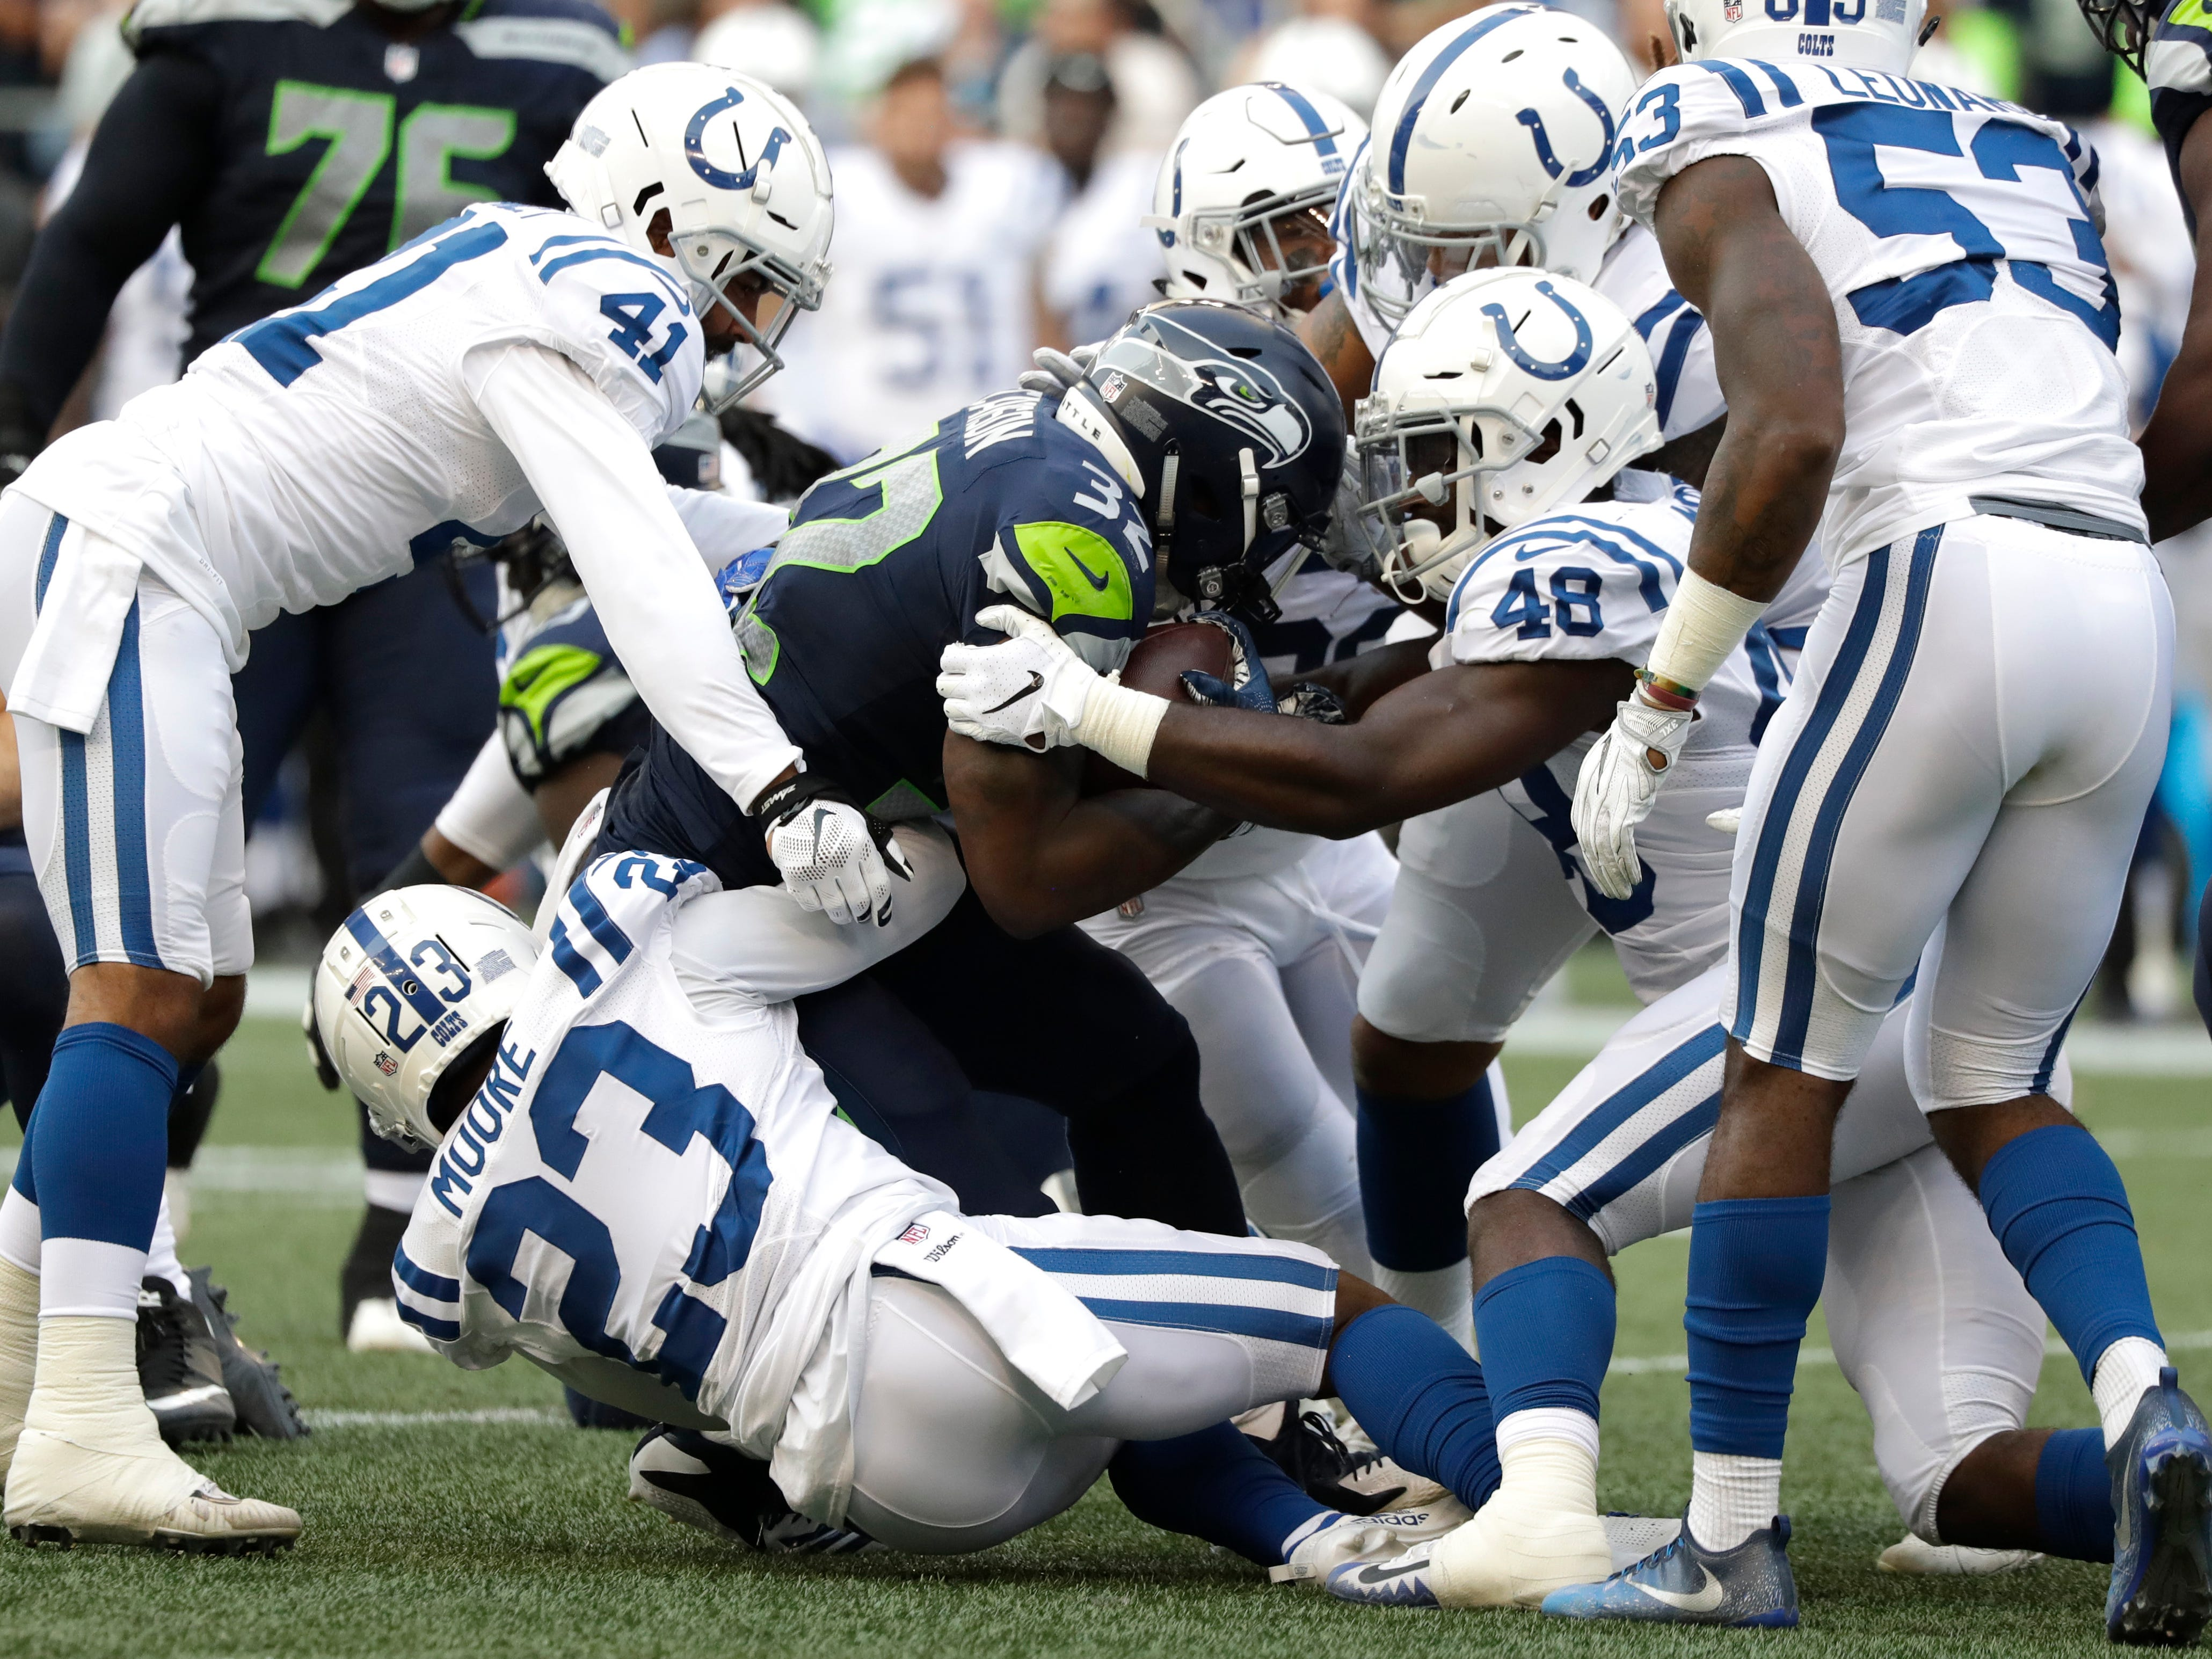 Seattle Seahawks running back Chris Carson (32) is tackled by Indianapolis Colts cornerback Kenny Moore (23) and linebacker Skai Moore (48) as he rushes during the first half of an NFL football preseason game, Thursday, Aug. 9, 2018, in Seattle. (AP Photo/Elaine Thompson)